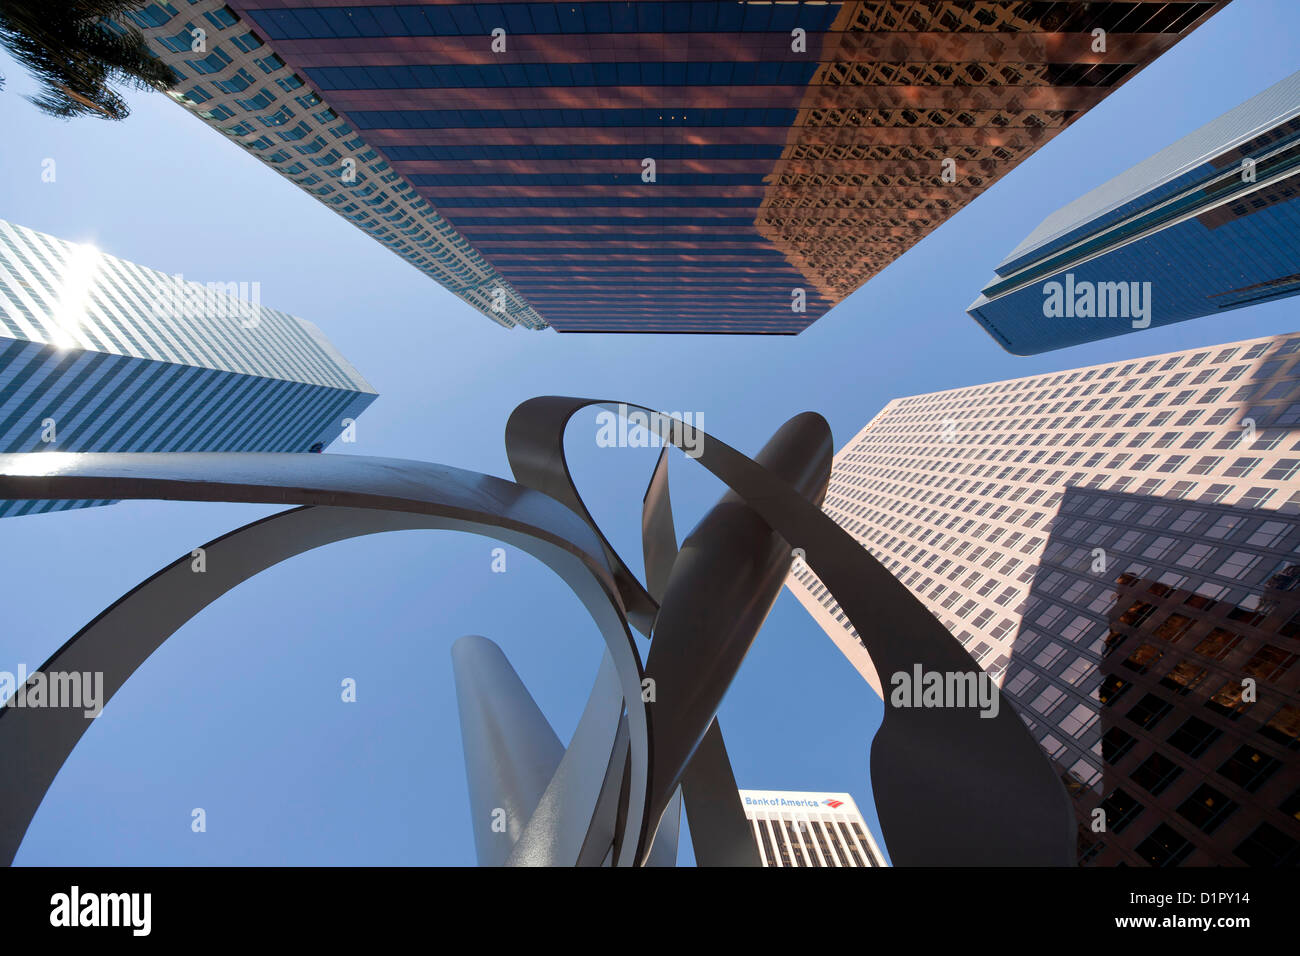 """Worm's-eye view of Downtown Los Angeles skyscrapers and sculpture """"Ulysses"""" by Alexander Lieberman, California, - Stock Image"""